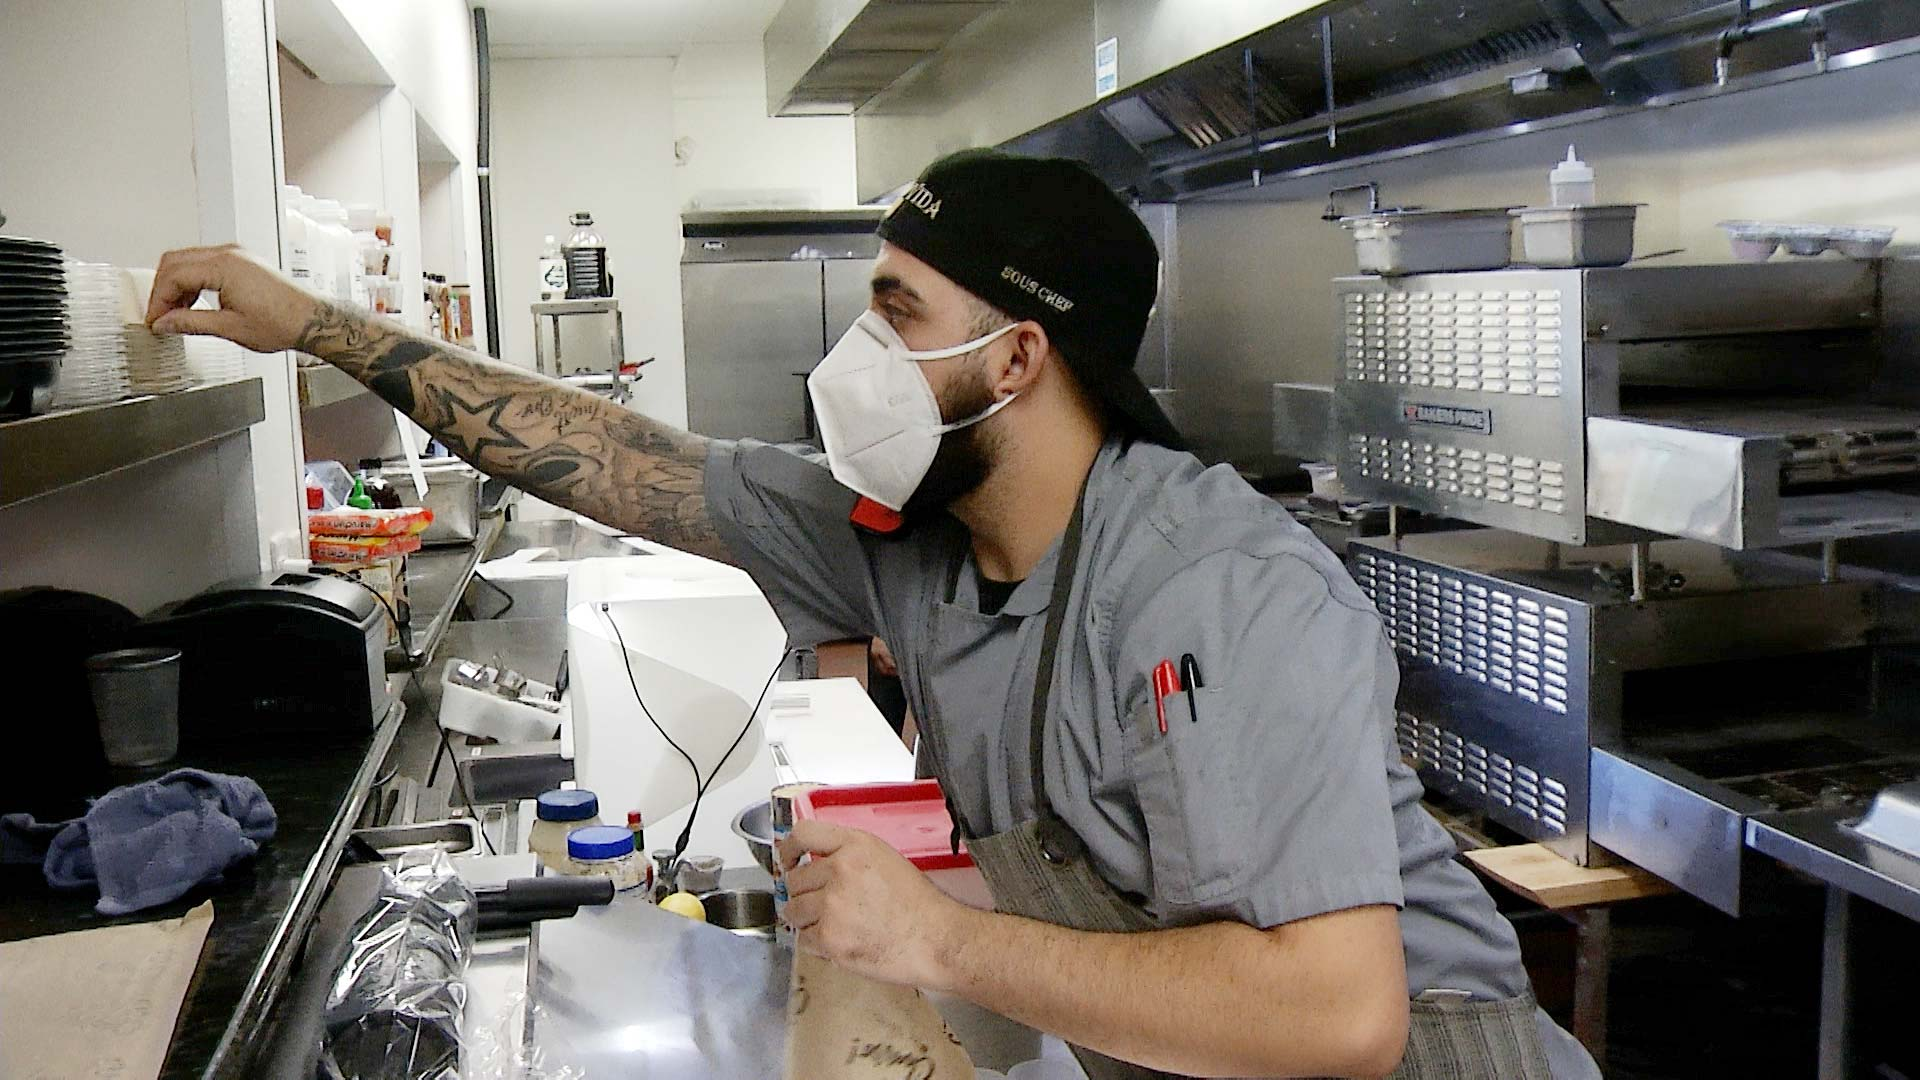 A sous chef prepares orders while masked inside the kitchen at Barrio Charro in Tucson.